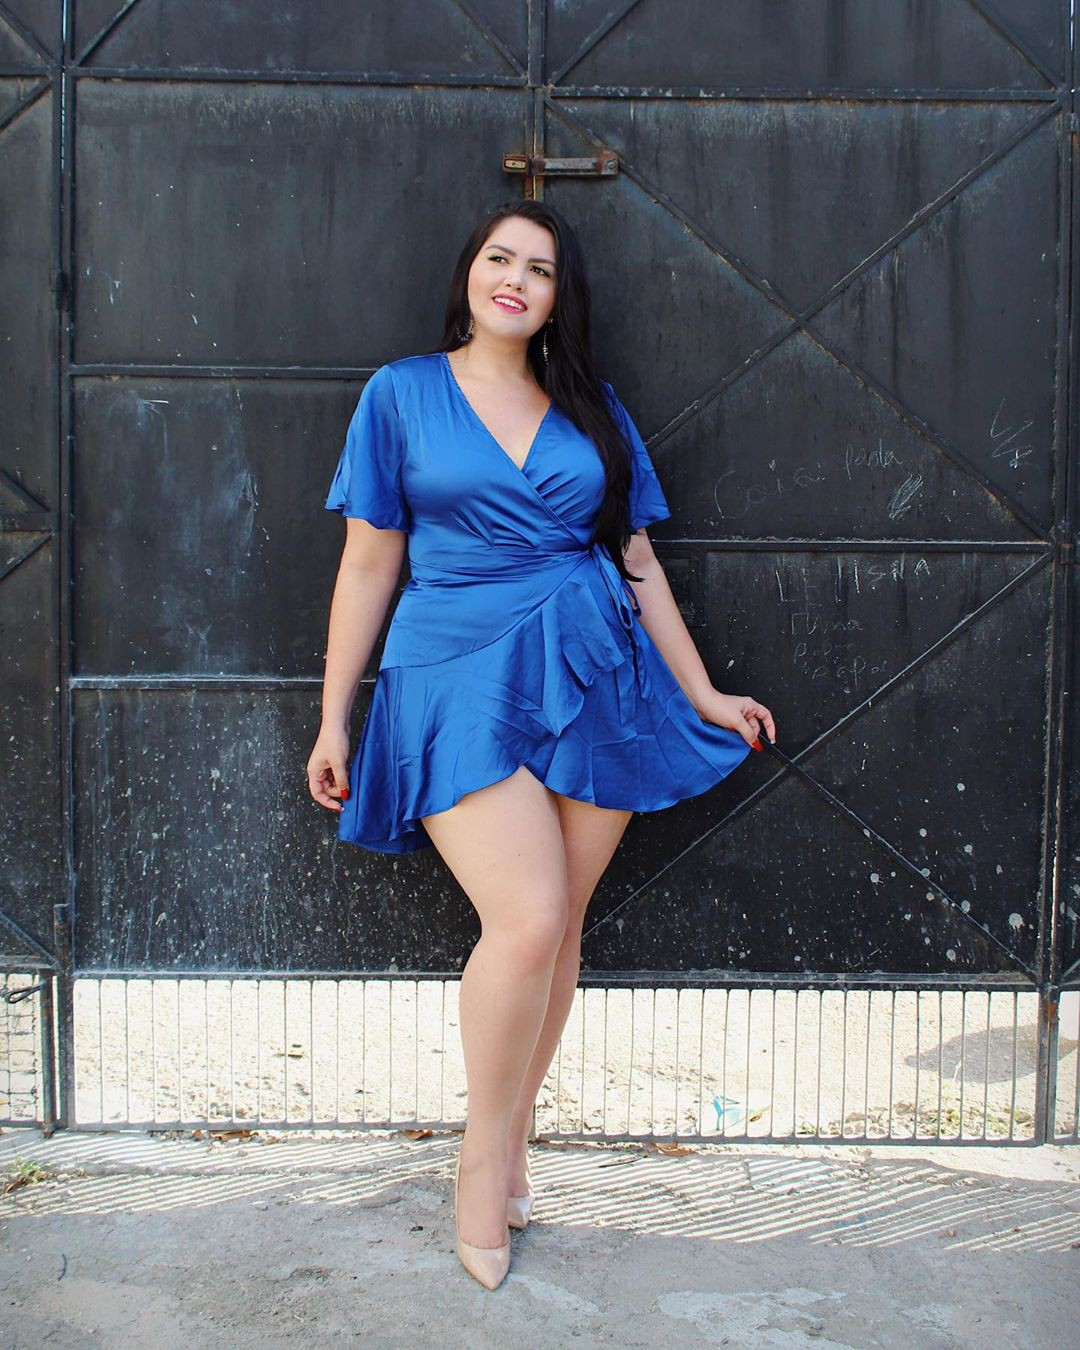 Electric blue and cobalt blue dress, sexy legs, apparel ideas